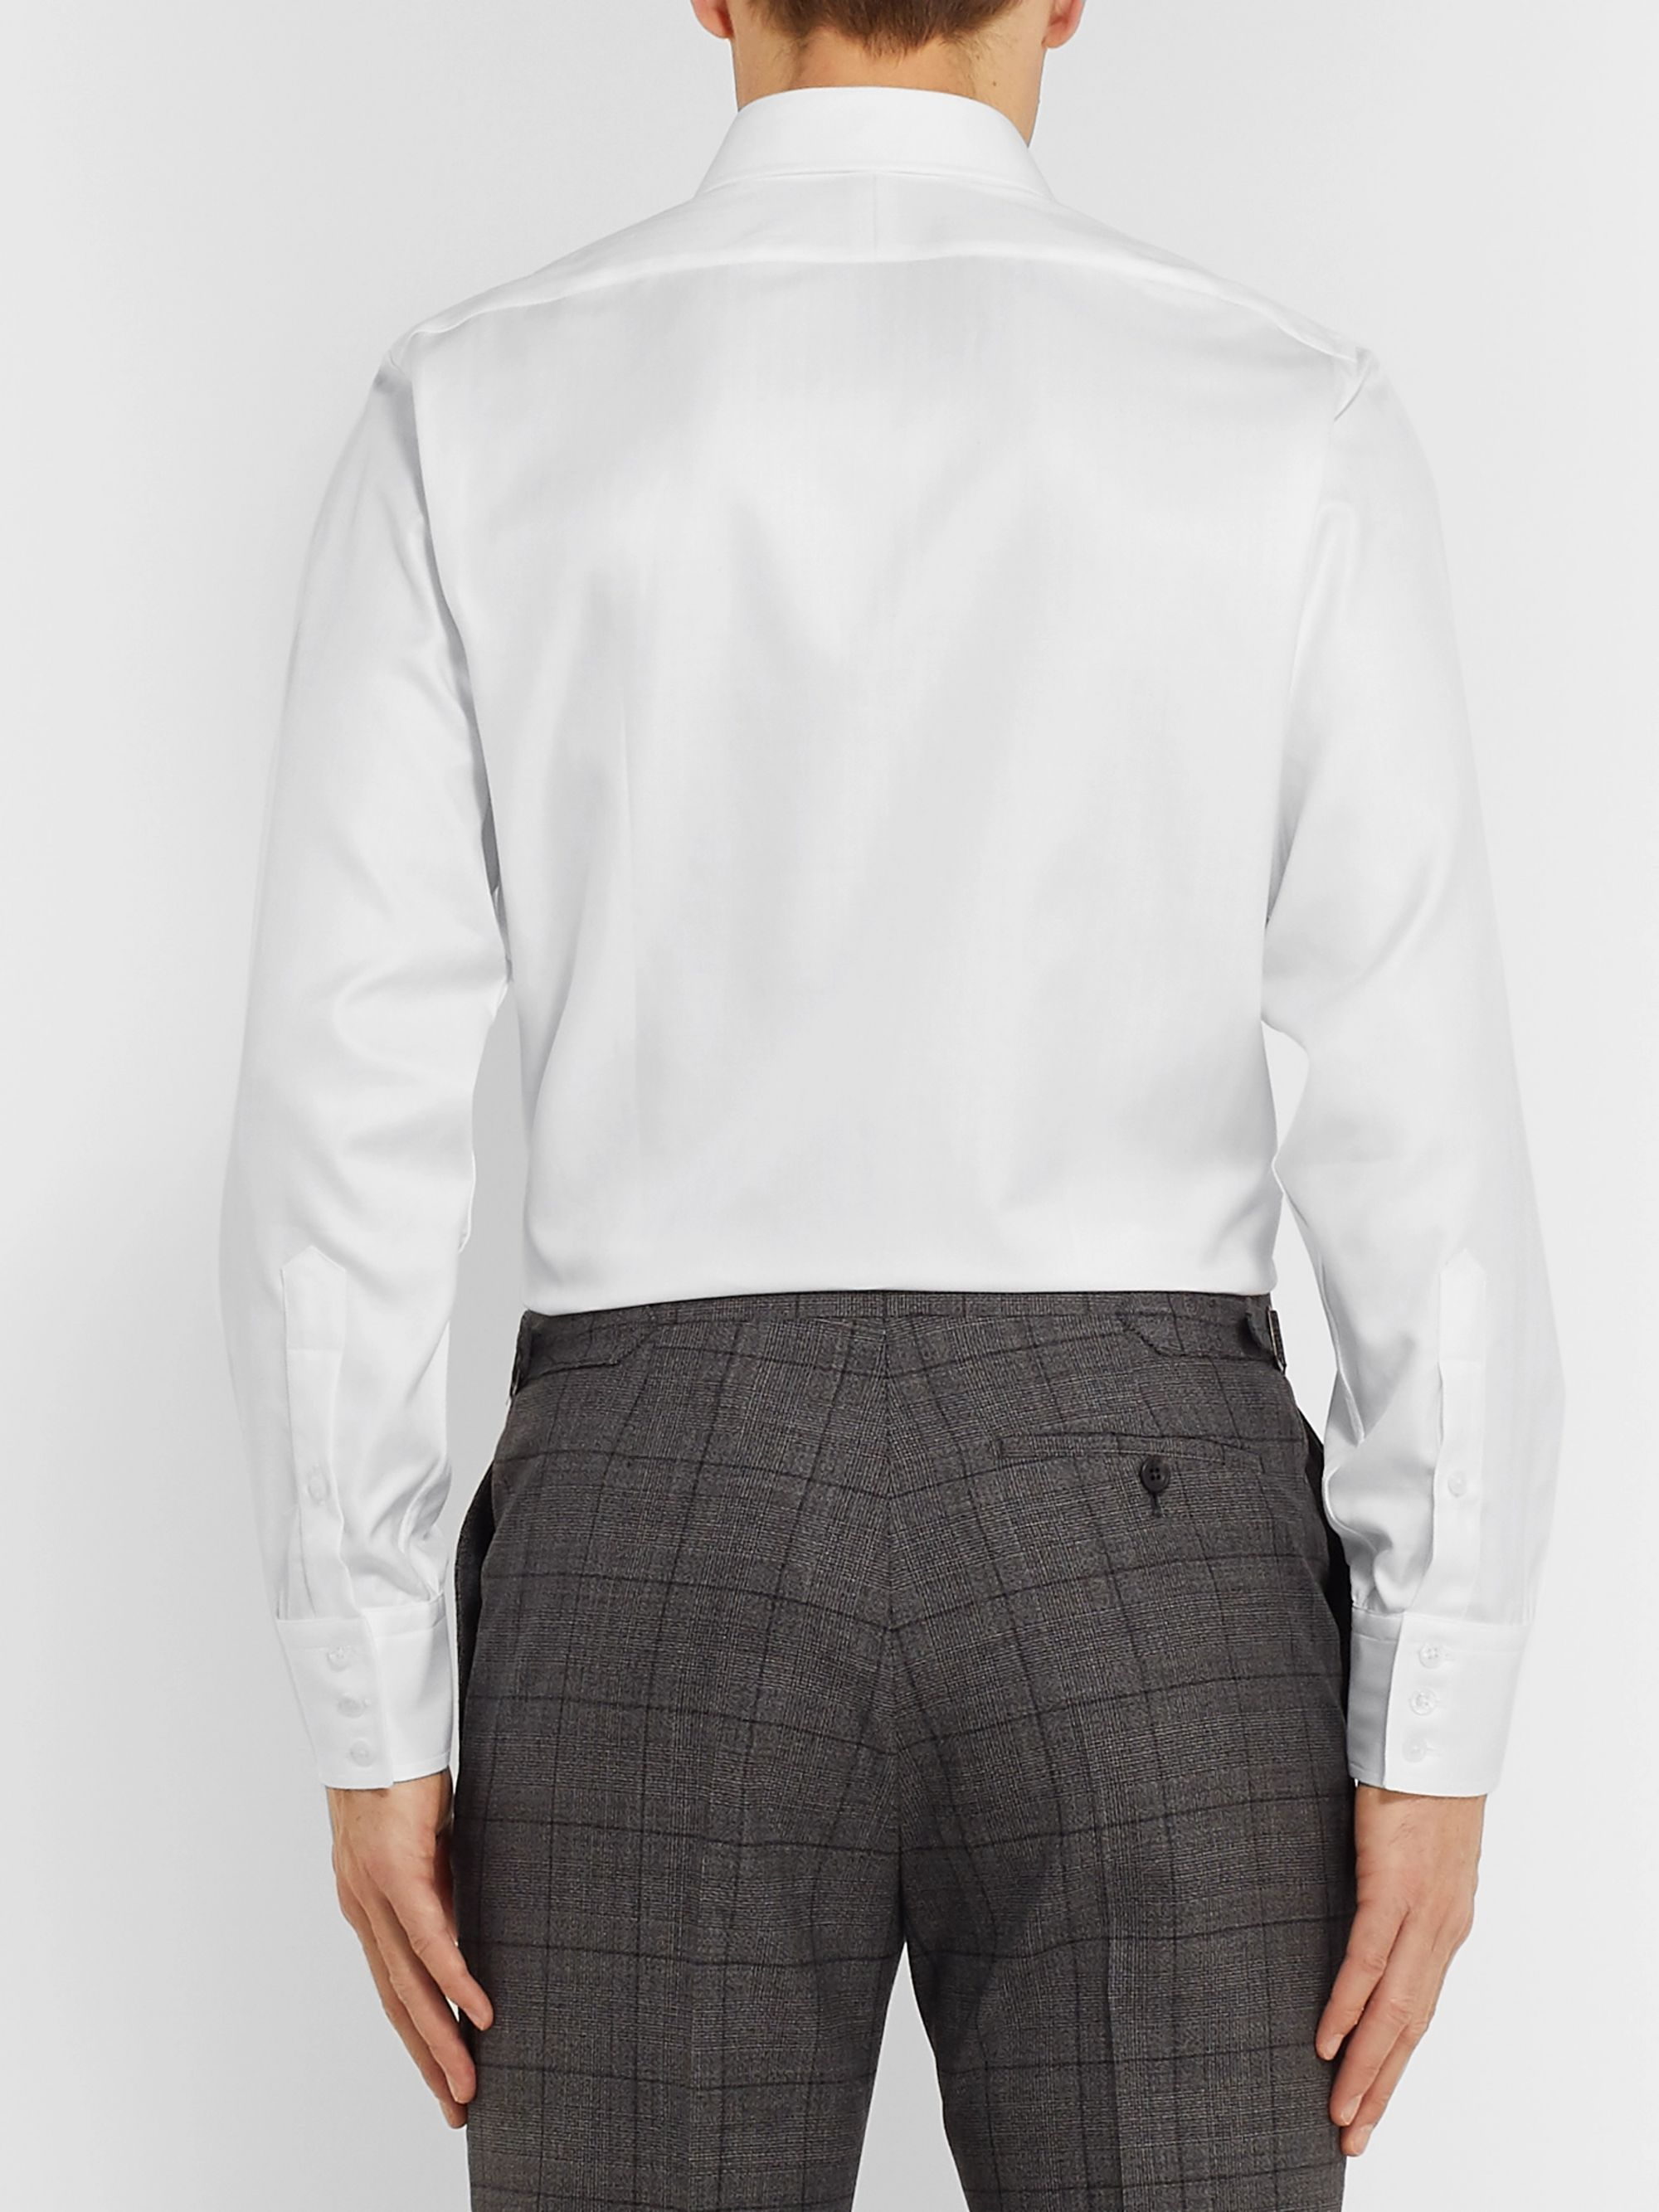 Kingsman + Turnbull & Asser White Herringbone Cotton Shirt